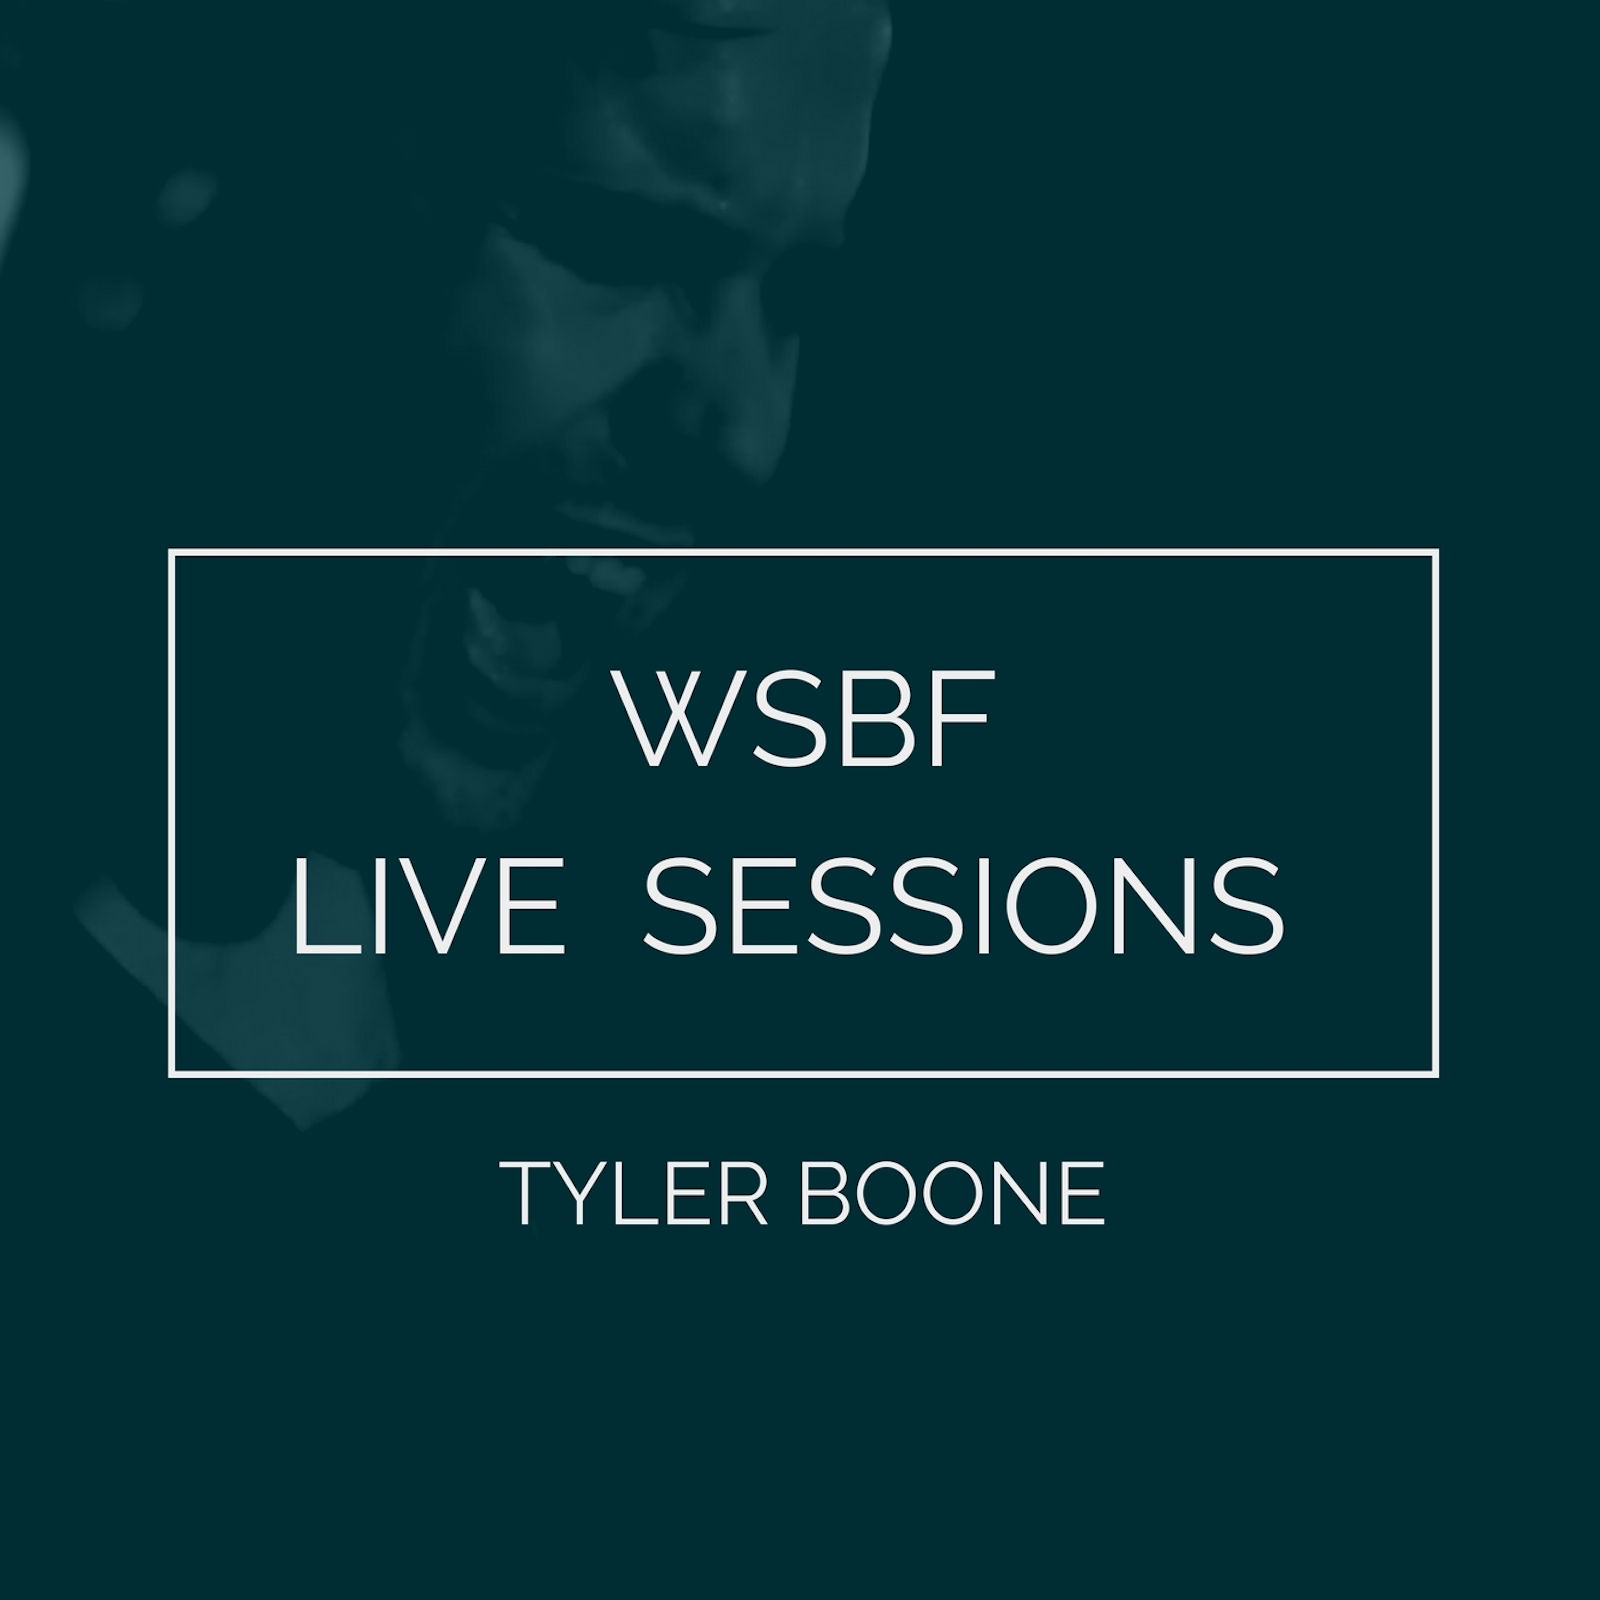 WSBF Live Sessions (cover art).jpg